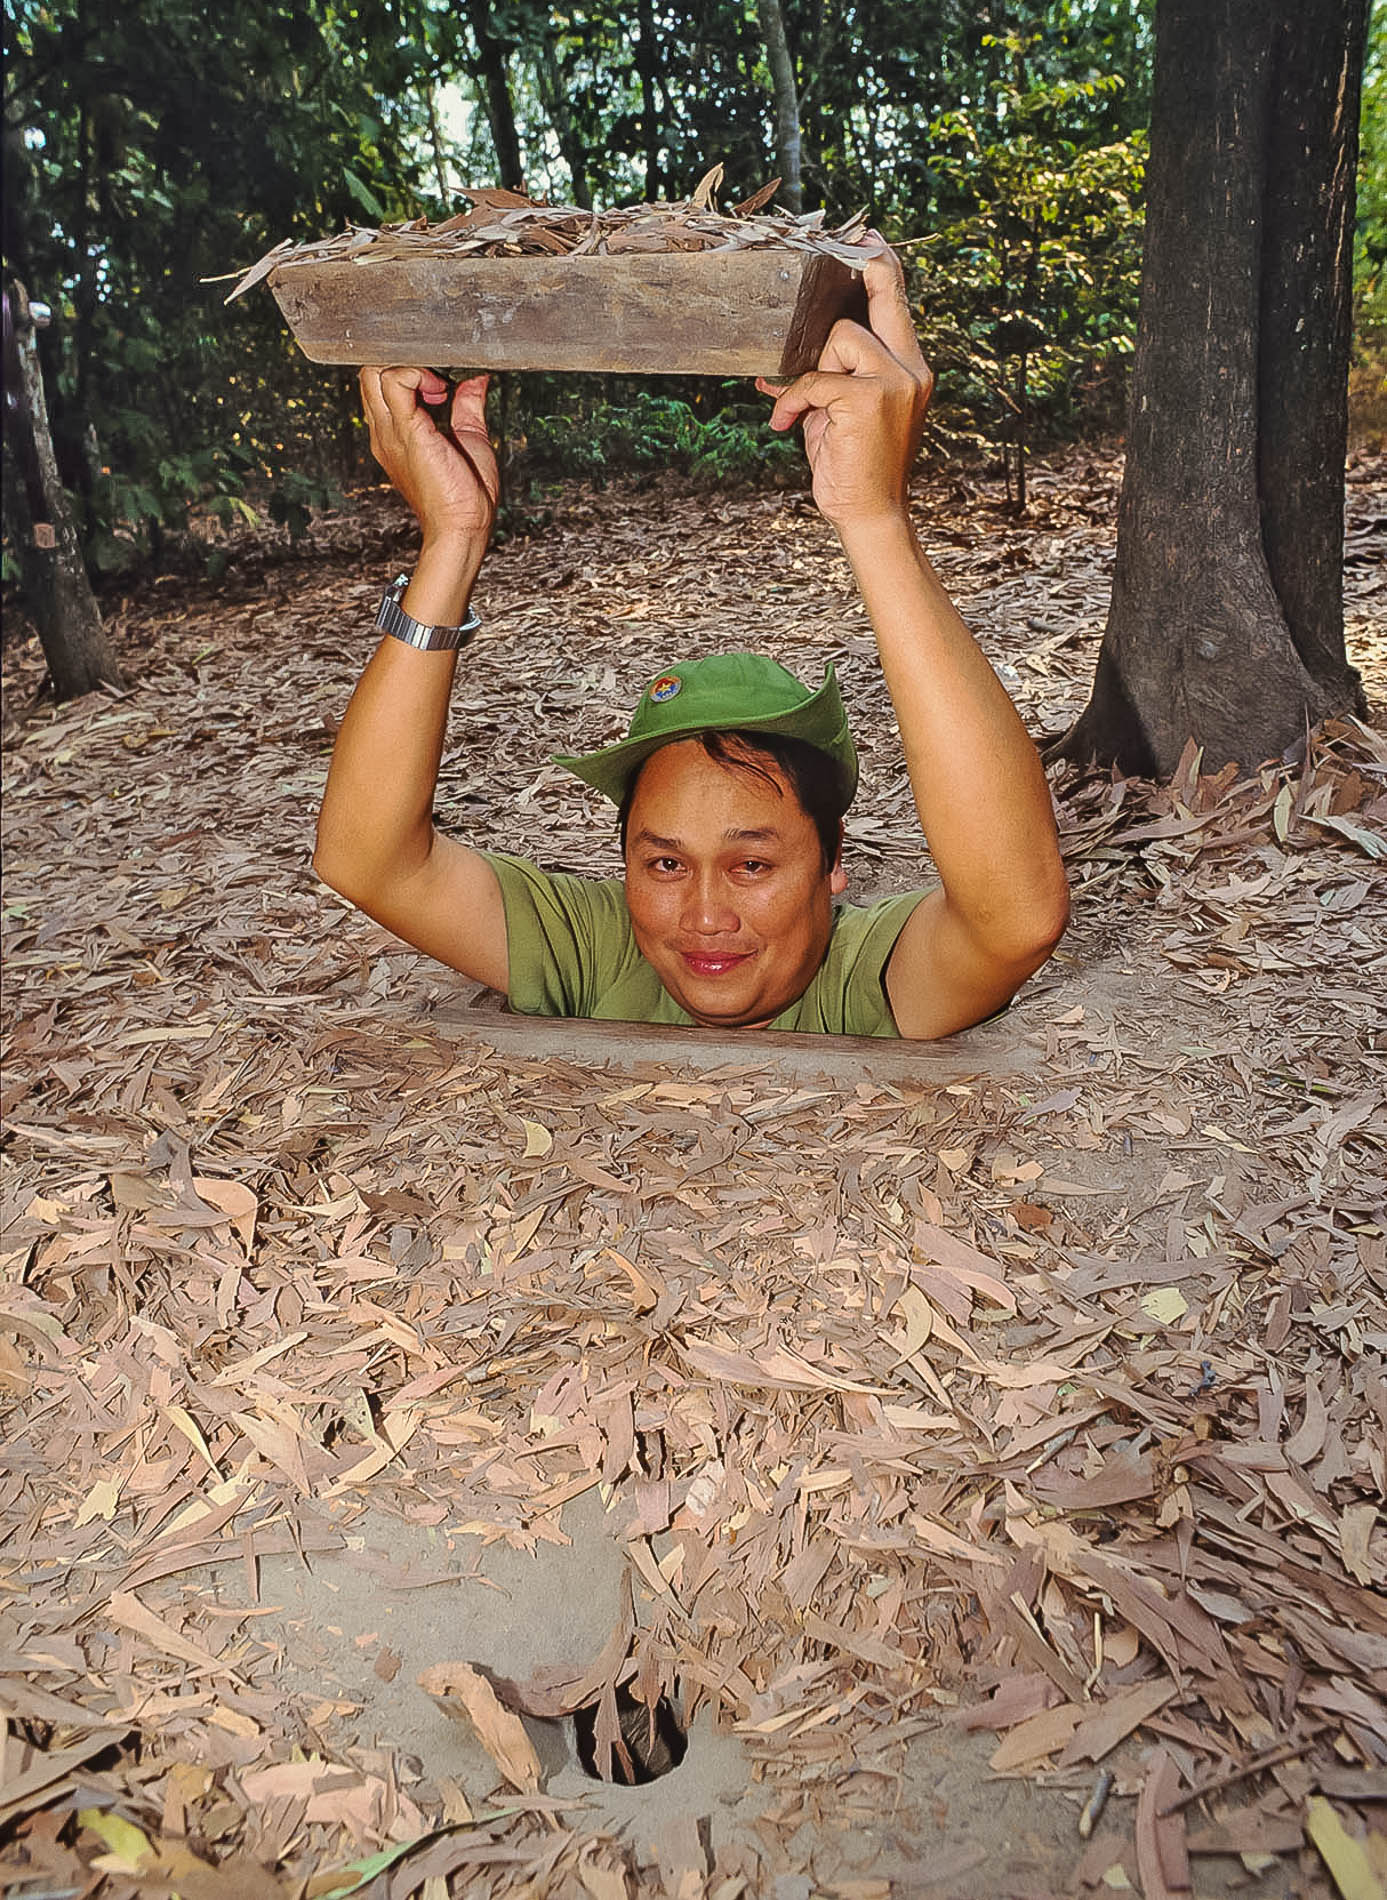 Guide at Cu Chi Tunnels, Vietnam